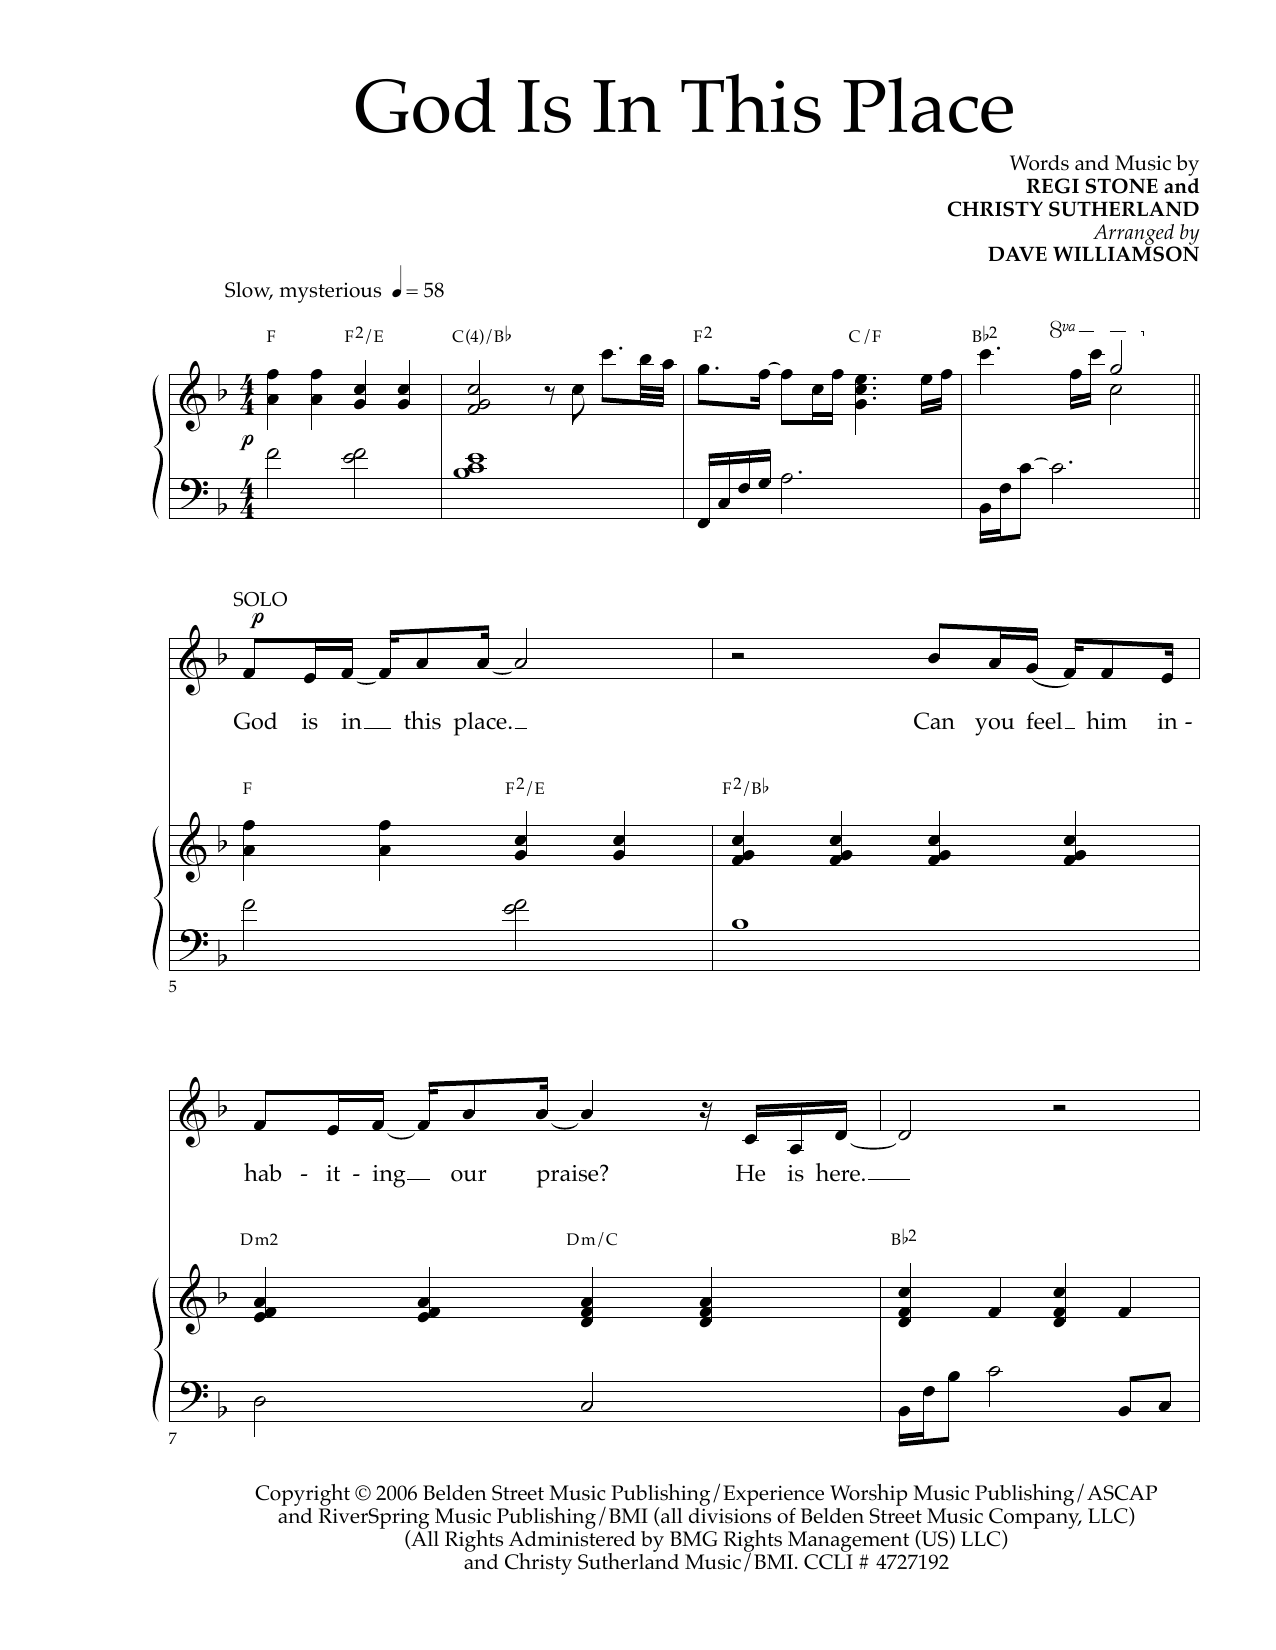 God Is In This Place (arr. Dave Williamson) Sheet Music